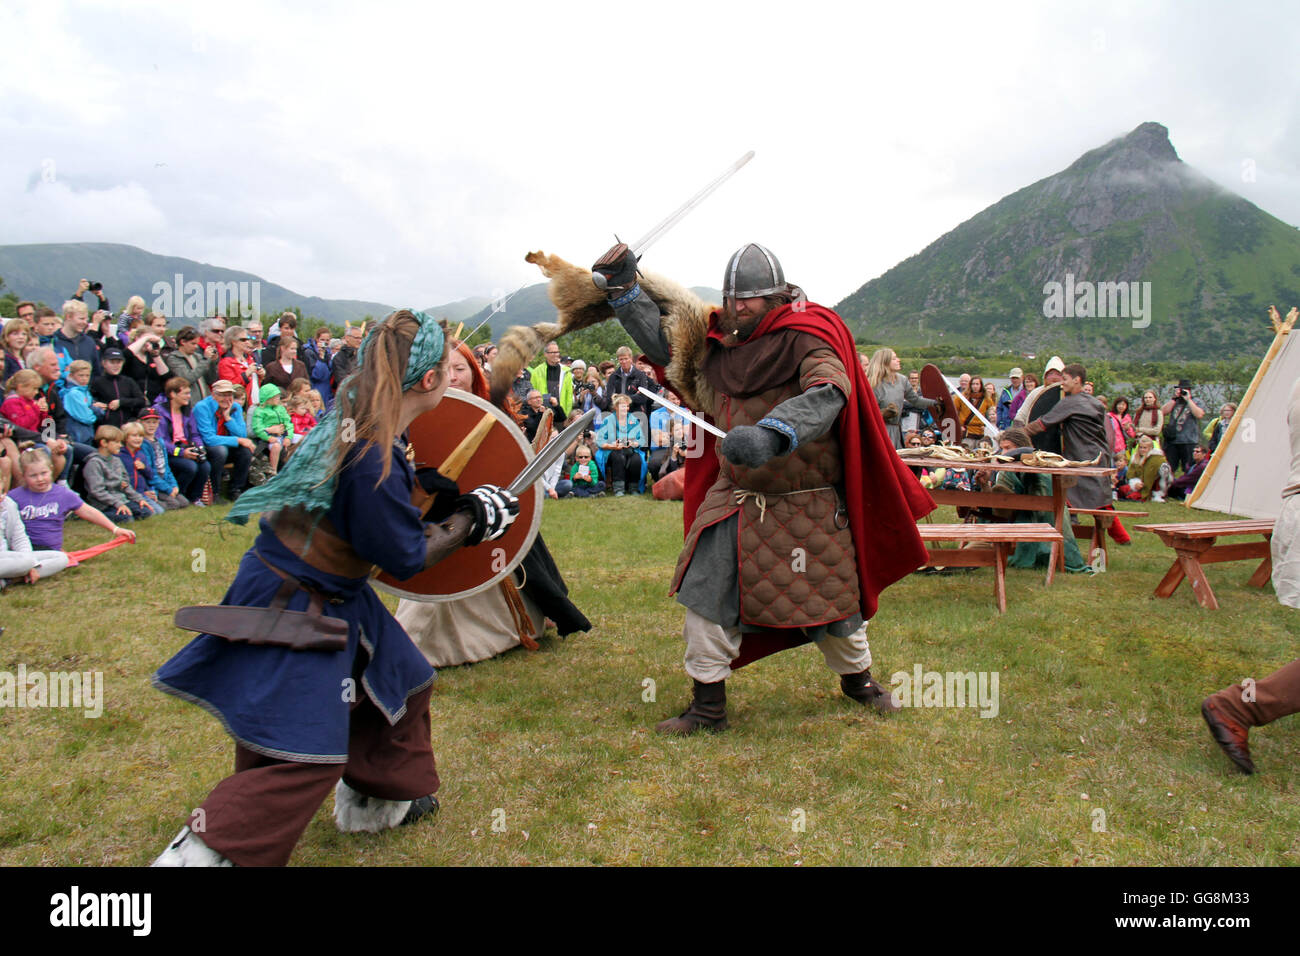 (160804) -- LEKNES (NORWAY), Aug. 4, 2016 (Xinhua) -- Participants of the Viking Festival perform for visitors in - Stock Image